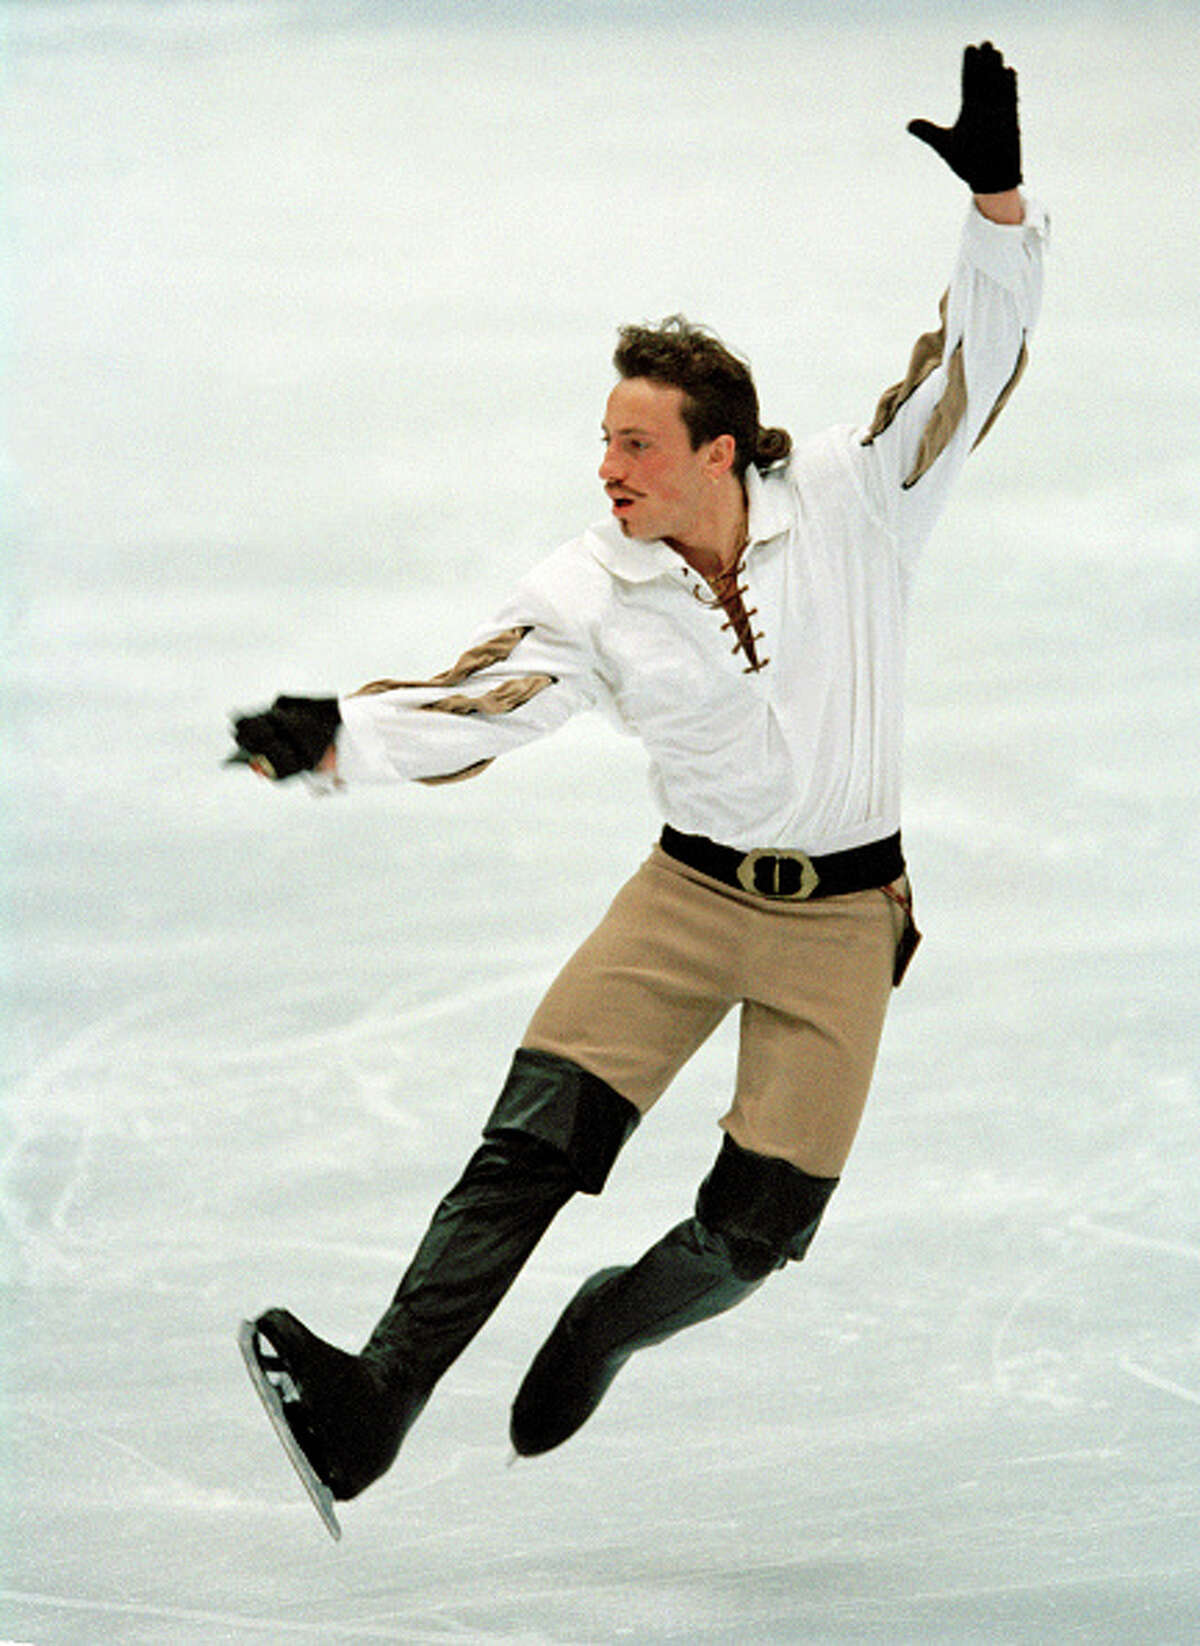 Philippe Candeloro of France, bronze medallist in the men's figure skating event, in action during the Winter Olympic Games in Nagano, Japan, circa February 1998. (Photo by Eileen Langsley/Popperfoto/Getty Images)